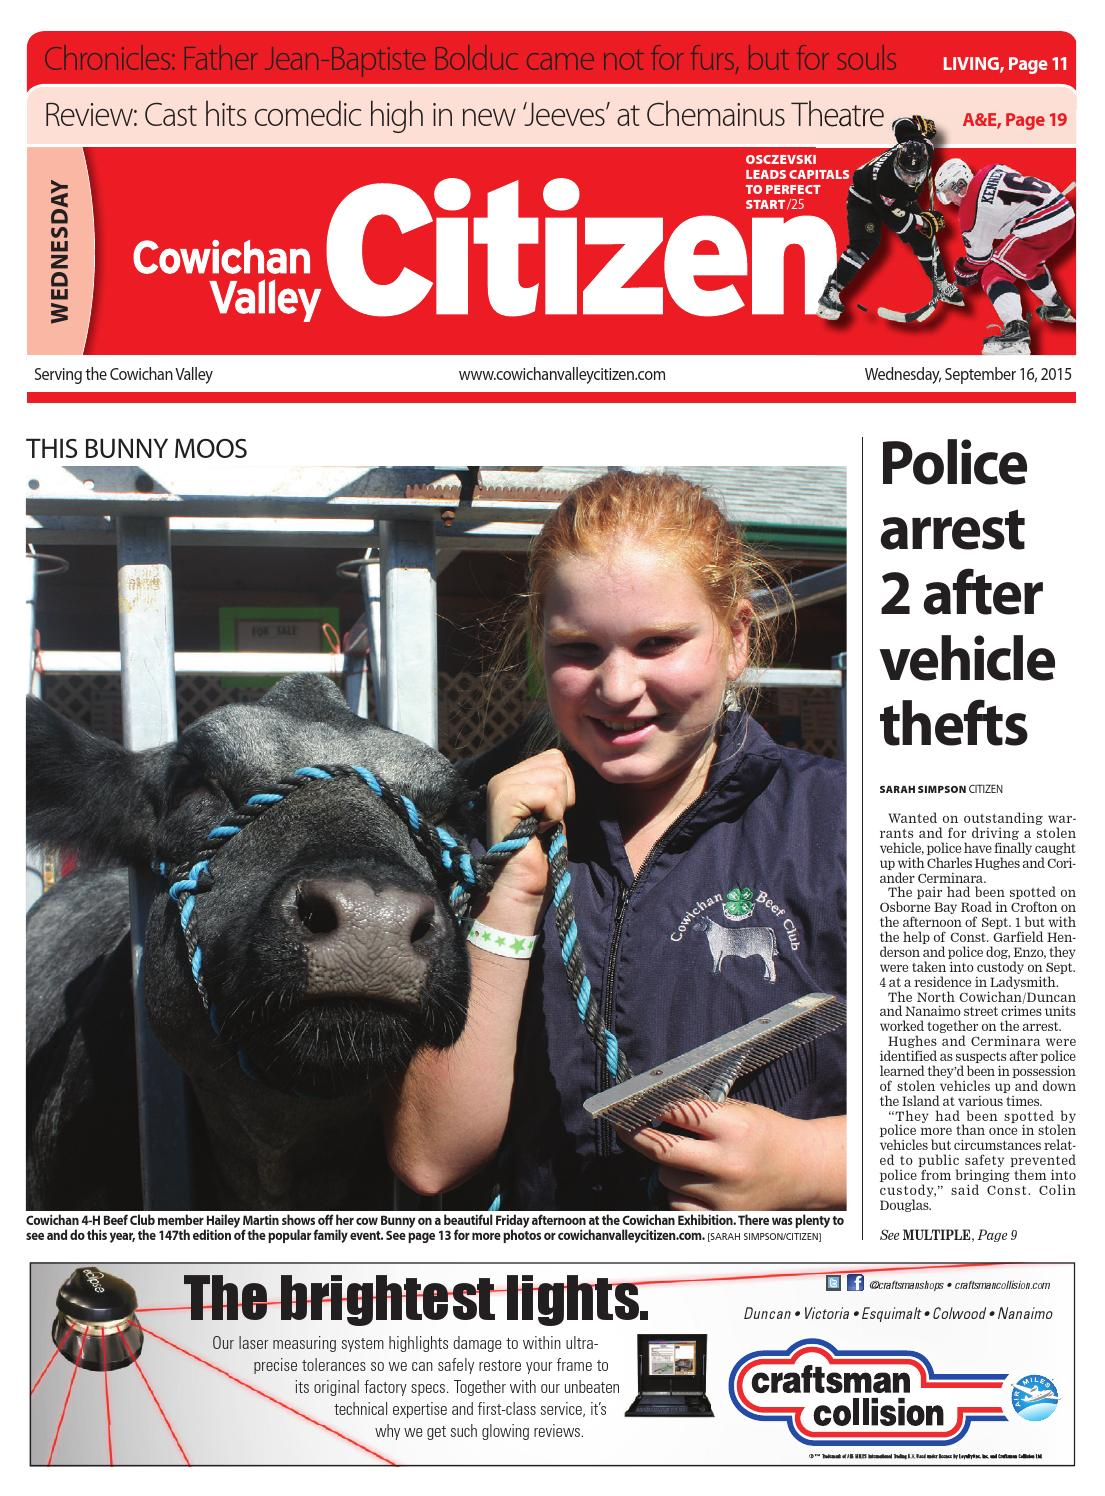 Cowichan Valley Citizen, September 16, 2015 by Black Press - issuu